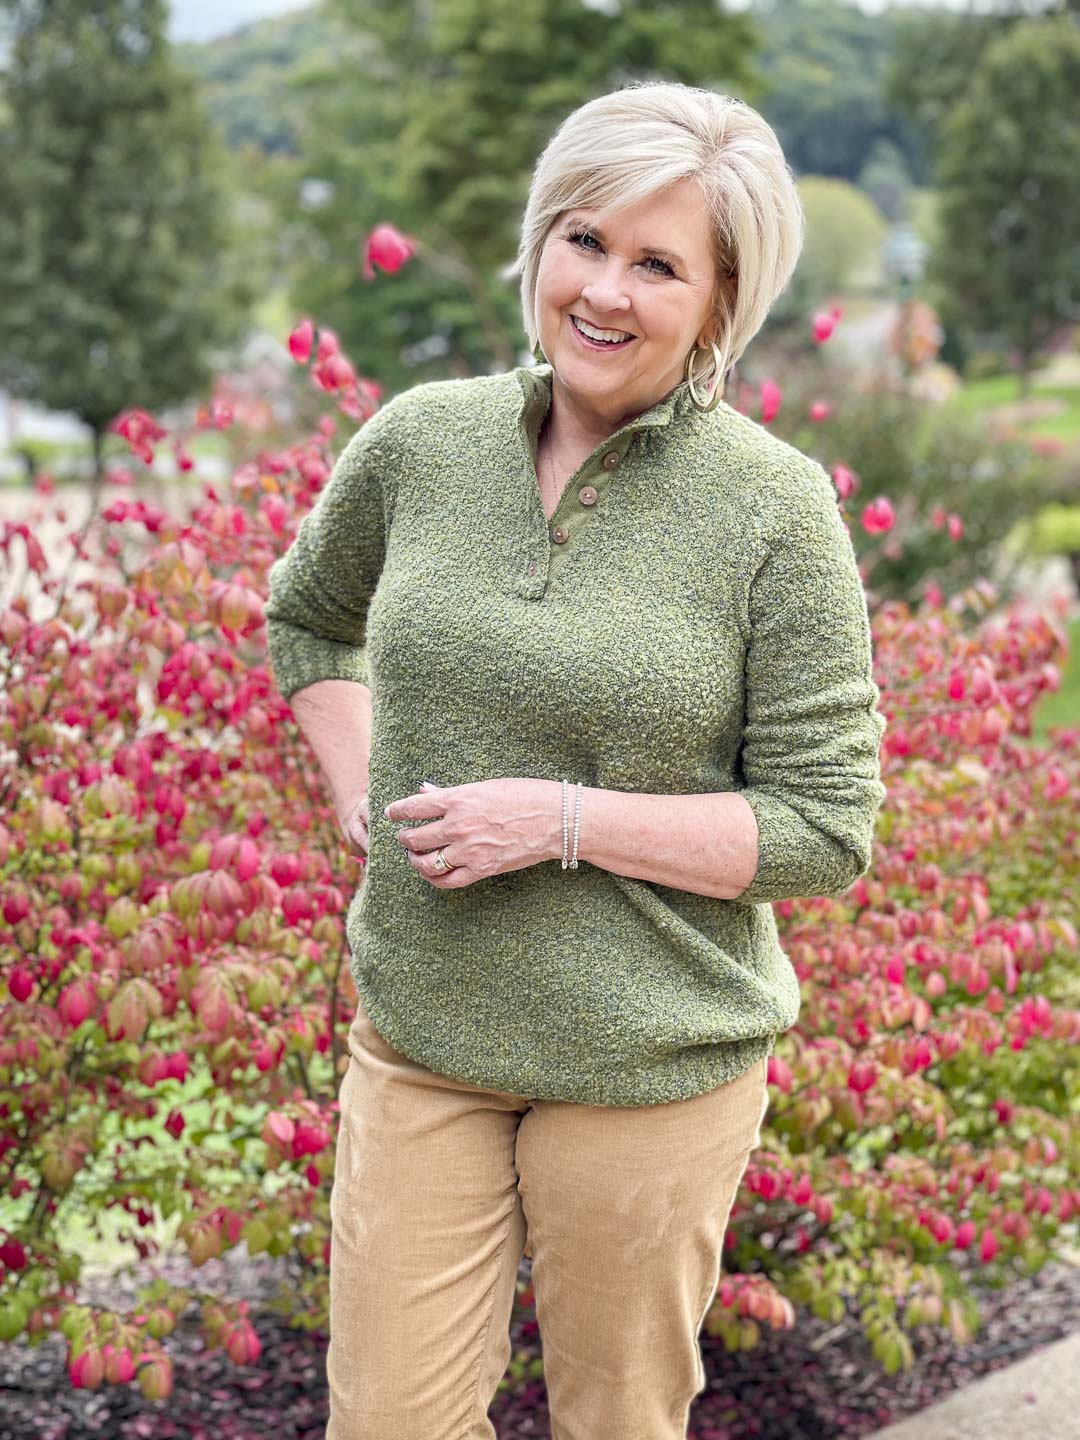 Over 40 Fashion Blogger, Tania Stephens is wearing a warm and cozy fall outfit of an olive green sweater